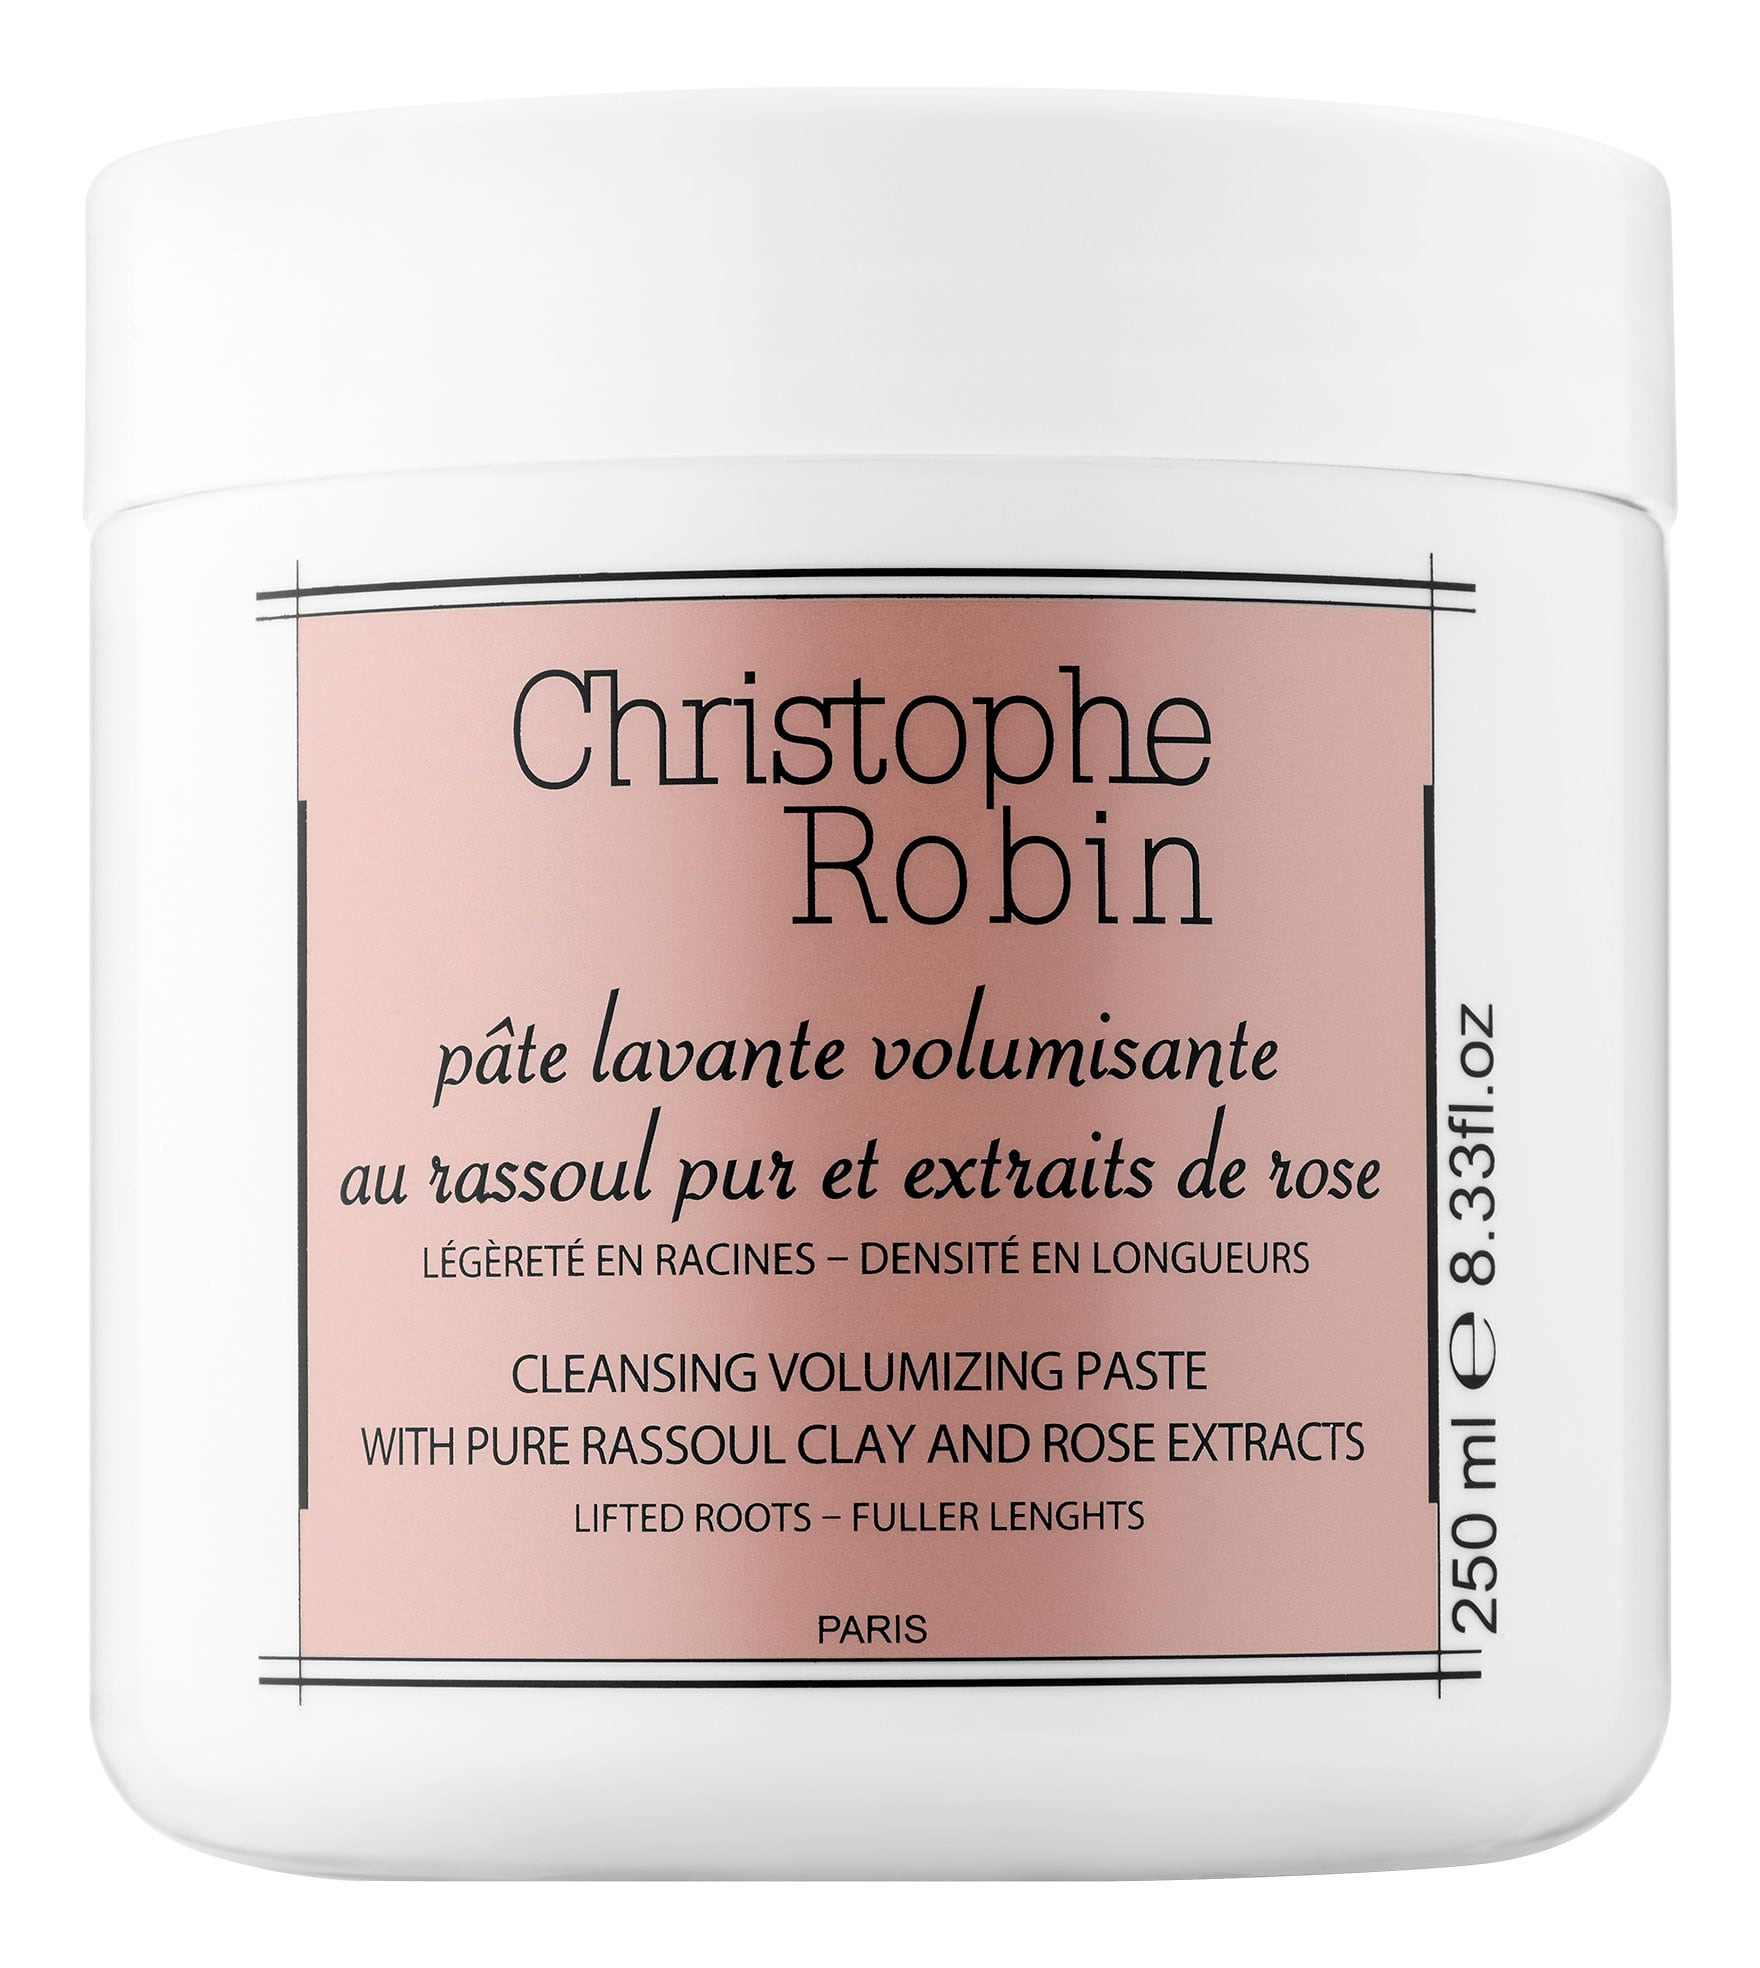 Christophe Robin Cleansing Volumizing Paste With Pure Rassoul Clay And Rose Extracts